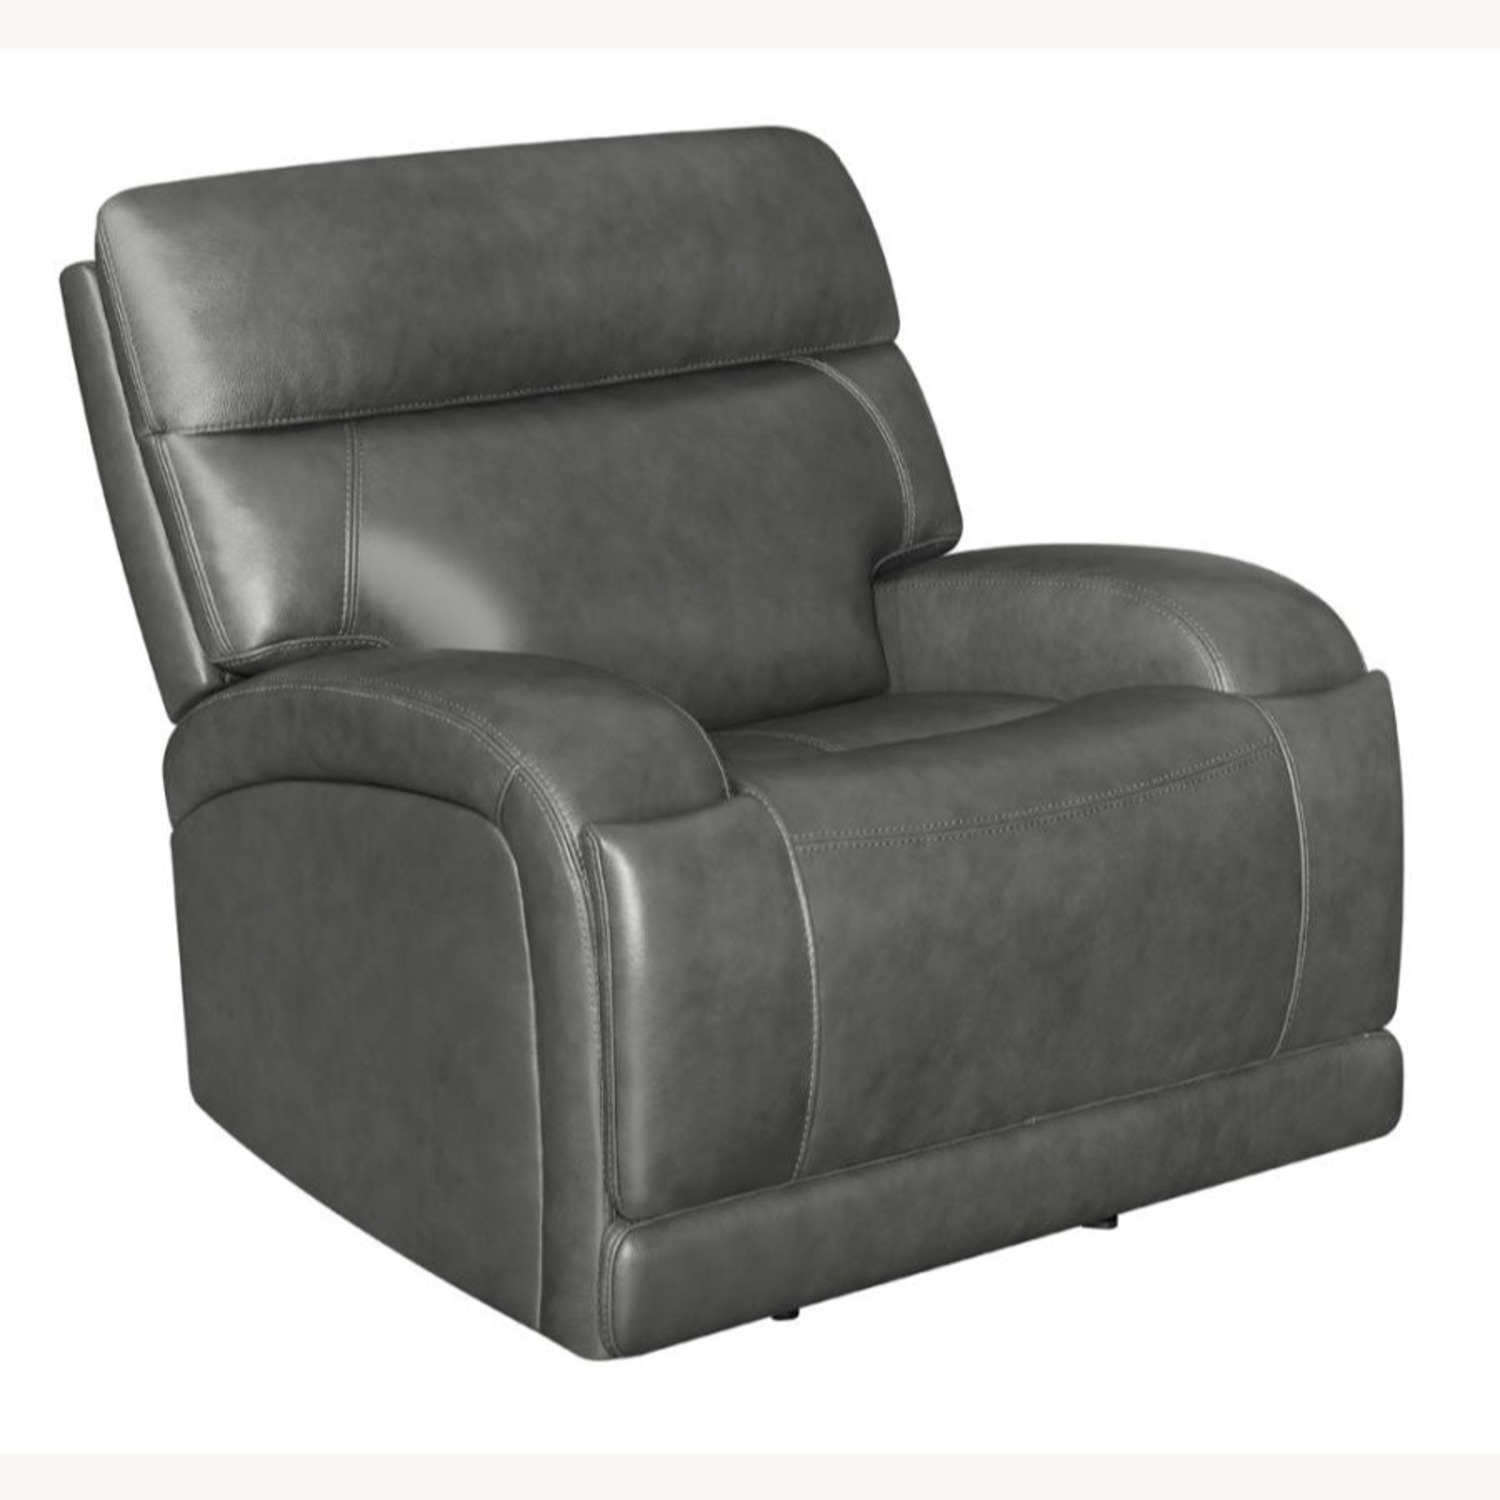 Power Recliner Chair In Charcoal Leatherette - image-0